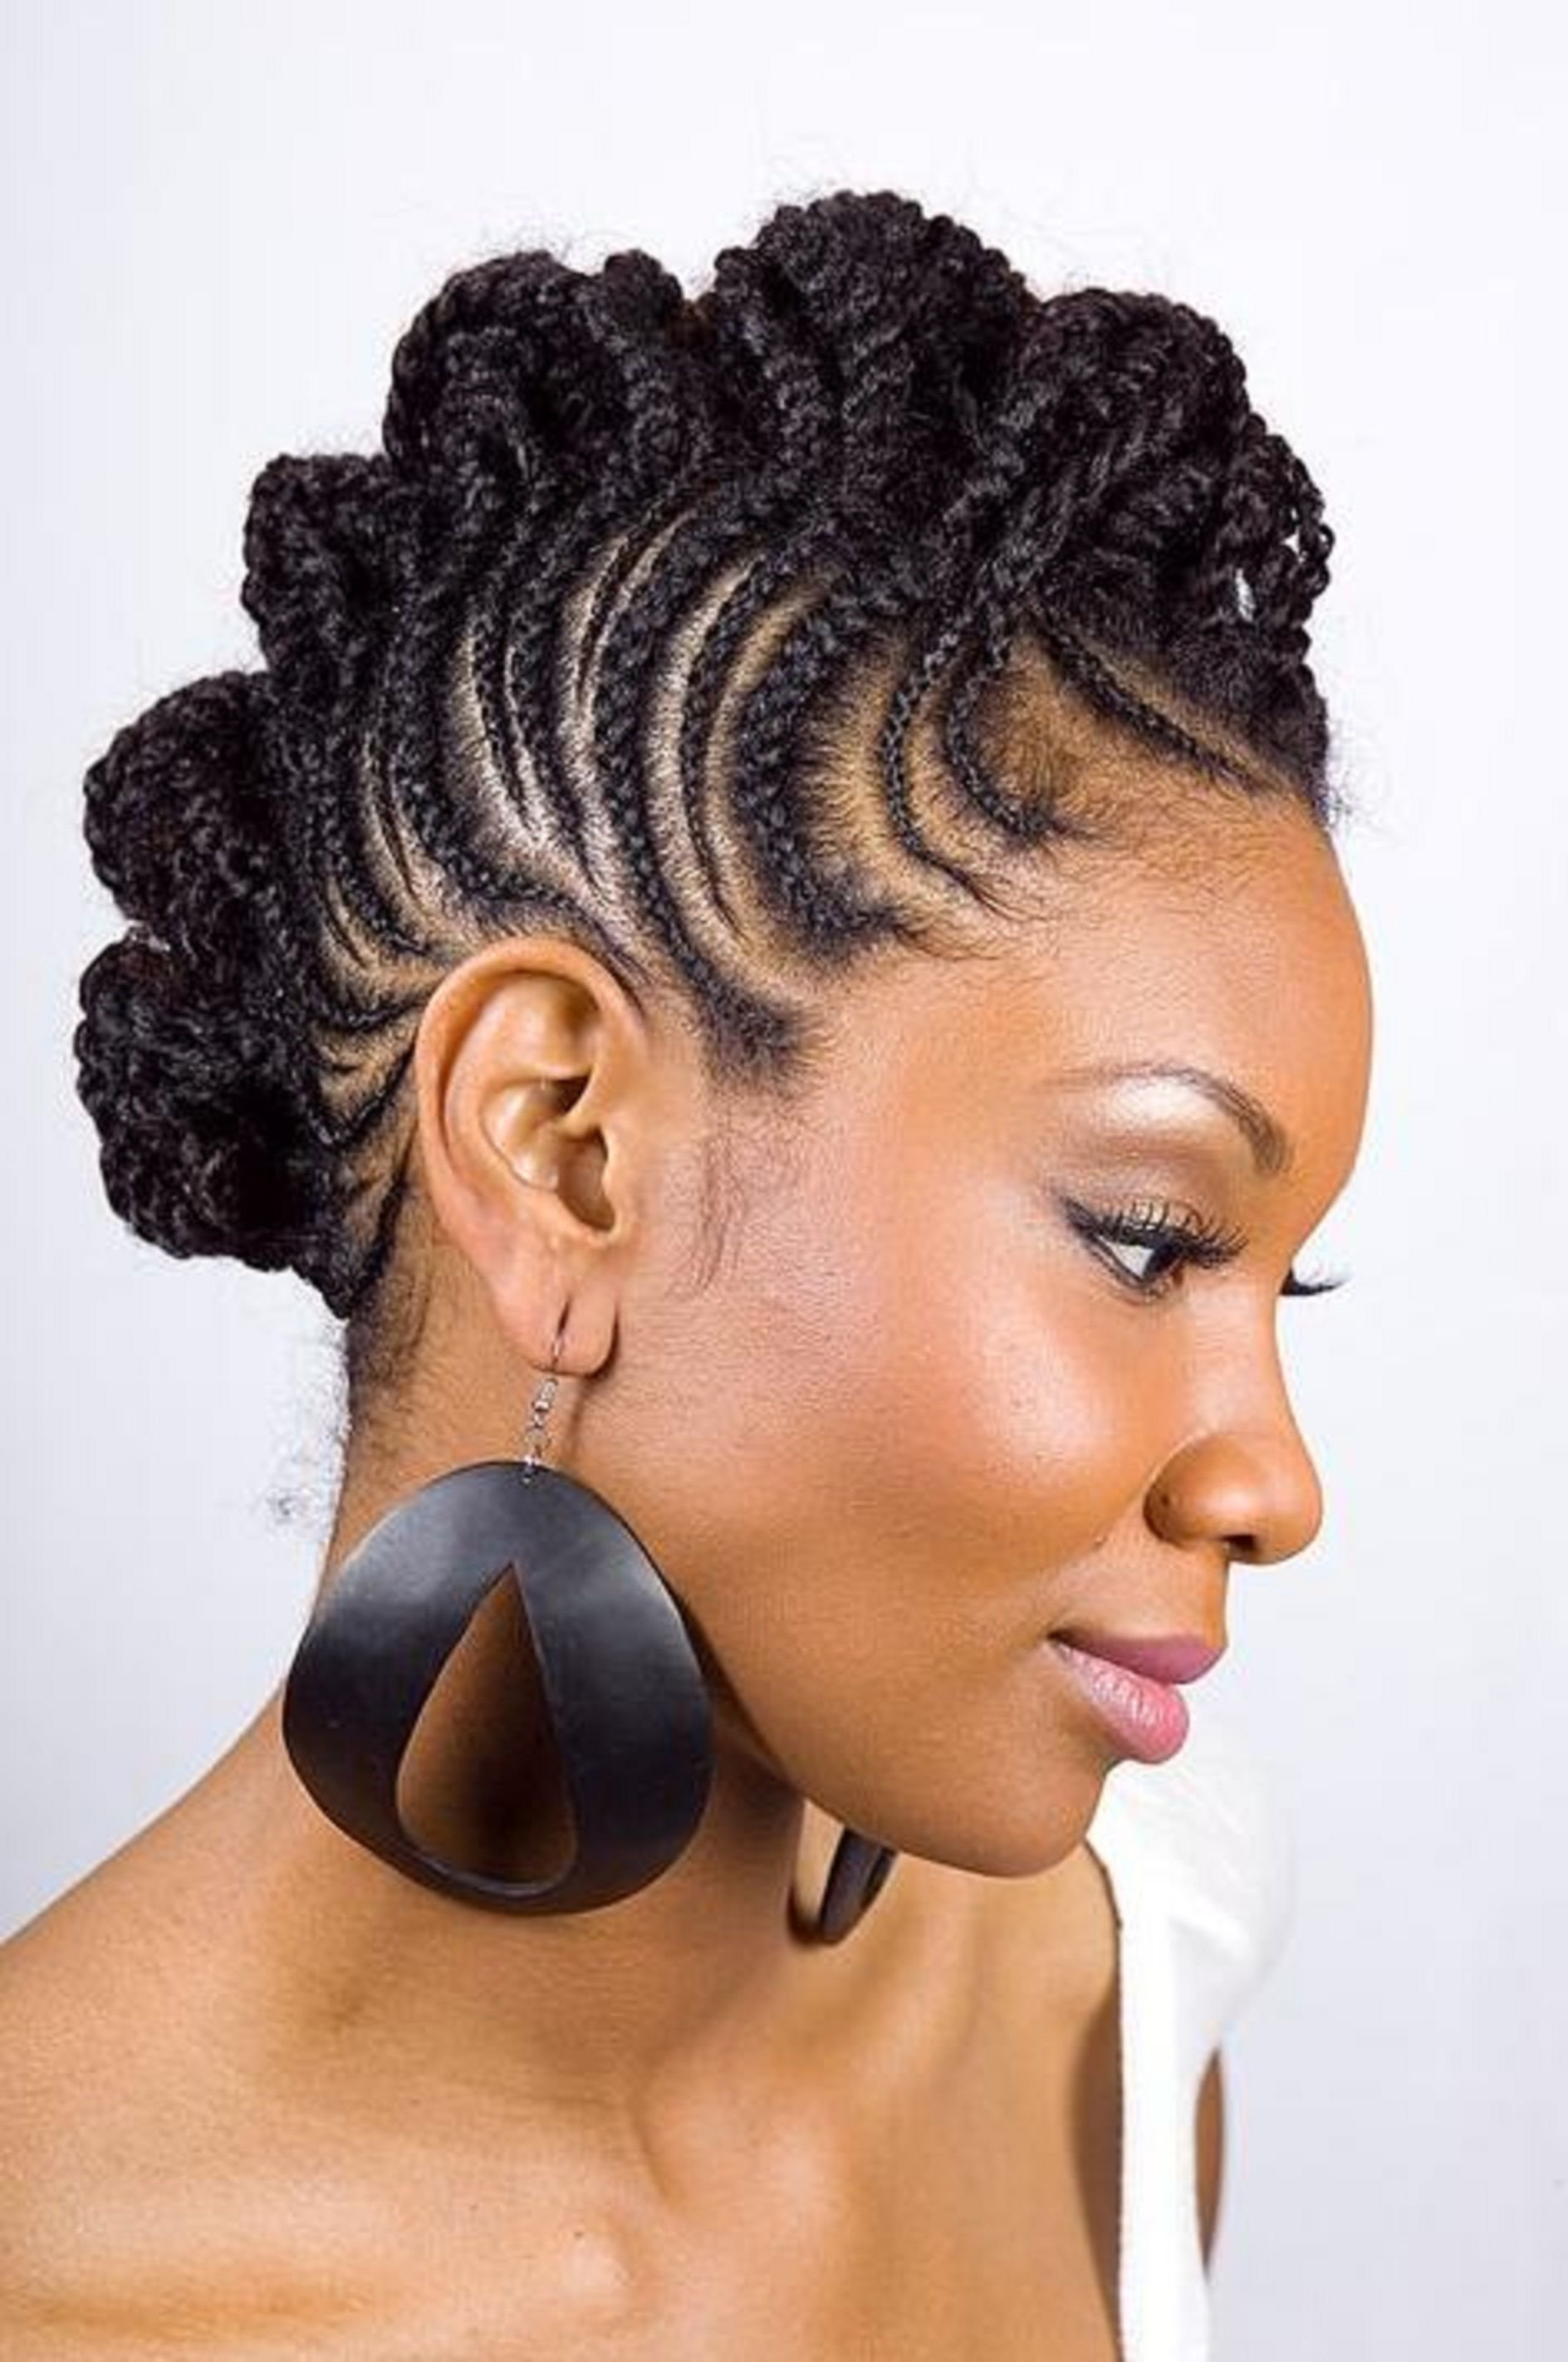 The Best 34 African American Short Hairstyles For Black Women Pictures